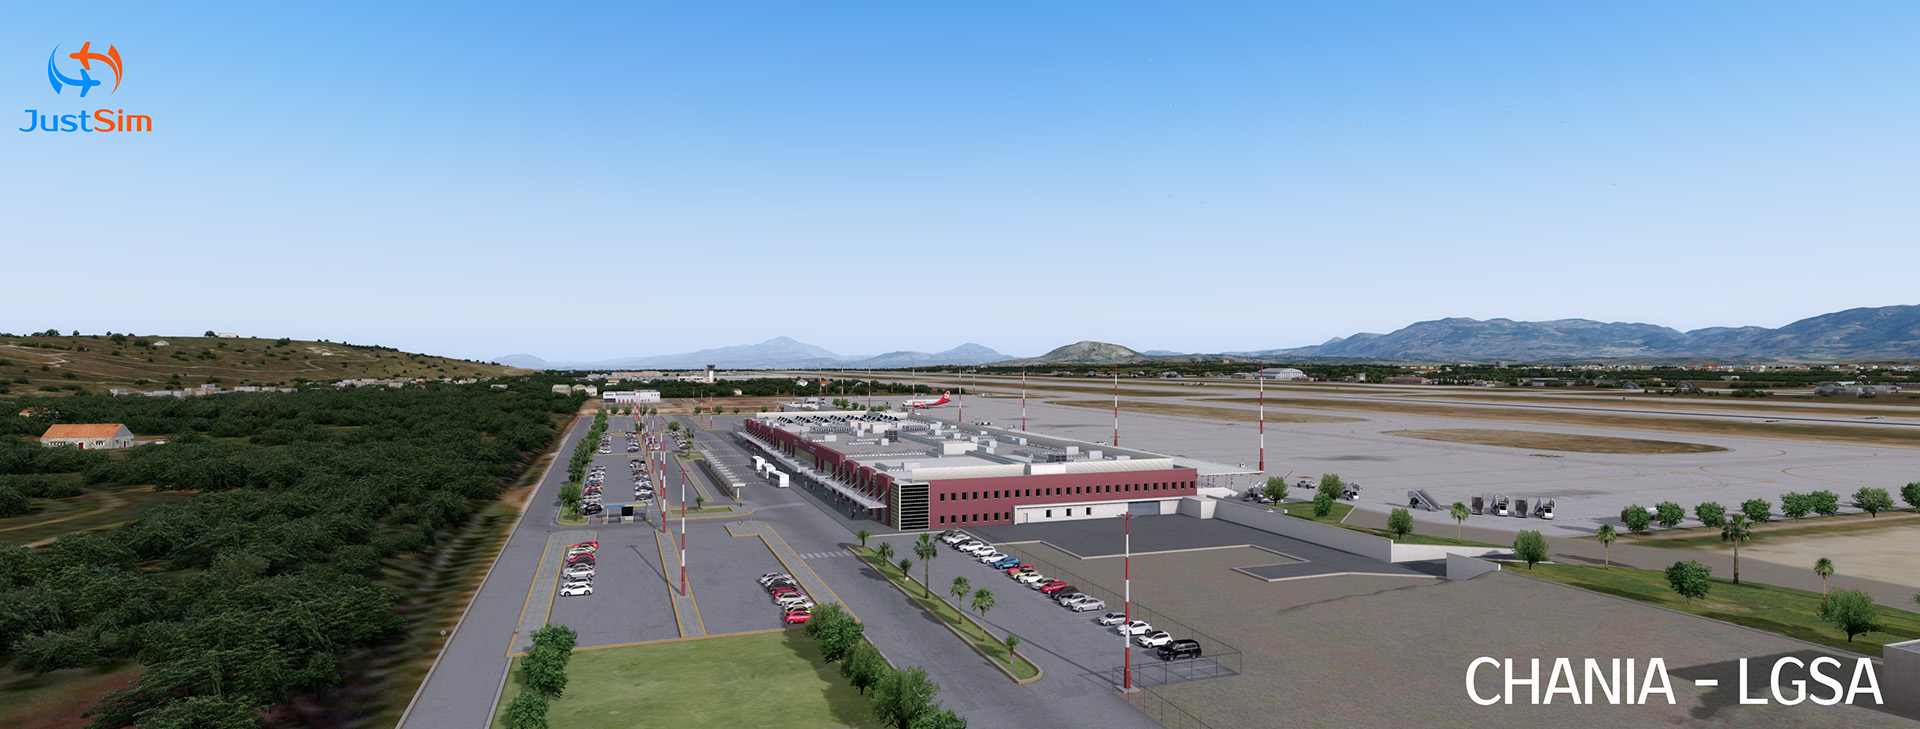 "JUSTSIM - CHANIA INTERNATIONAL AIRPORT ""DASKALOGIANNIS"" P3D"